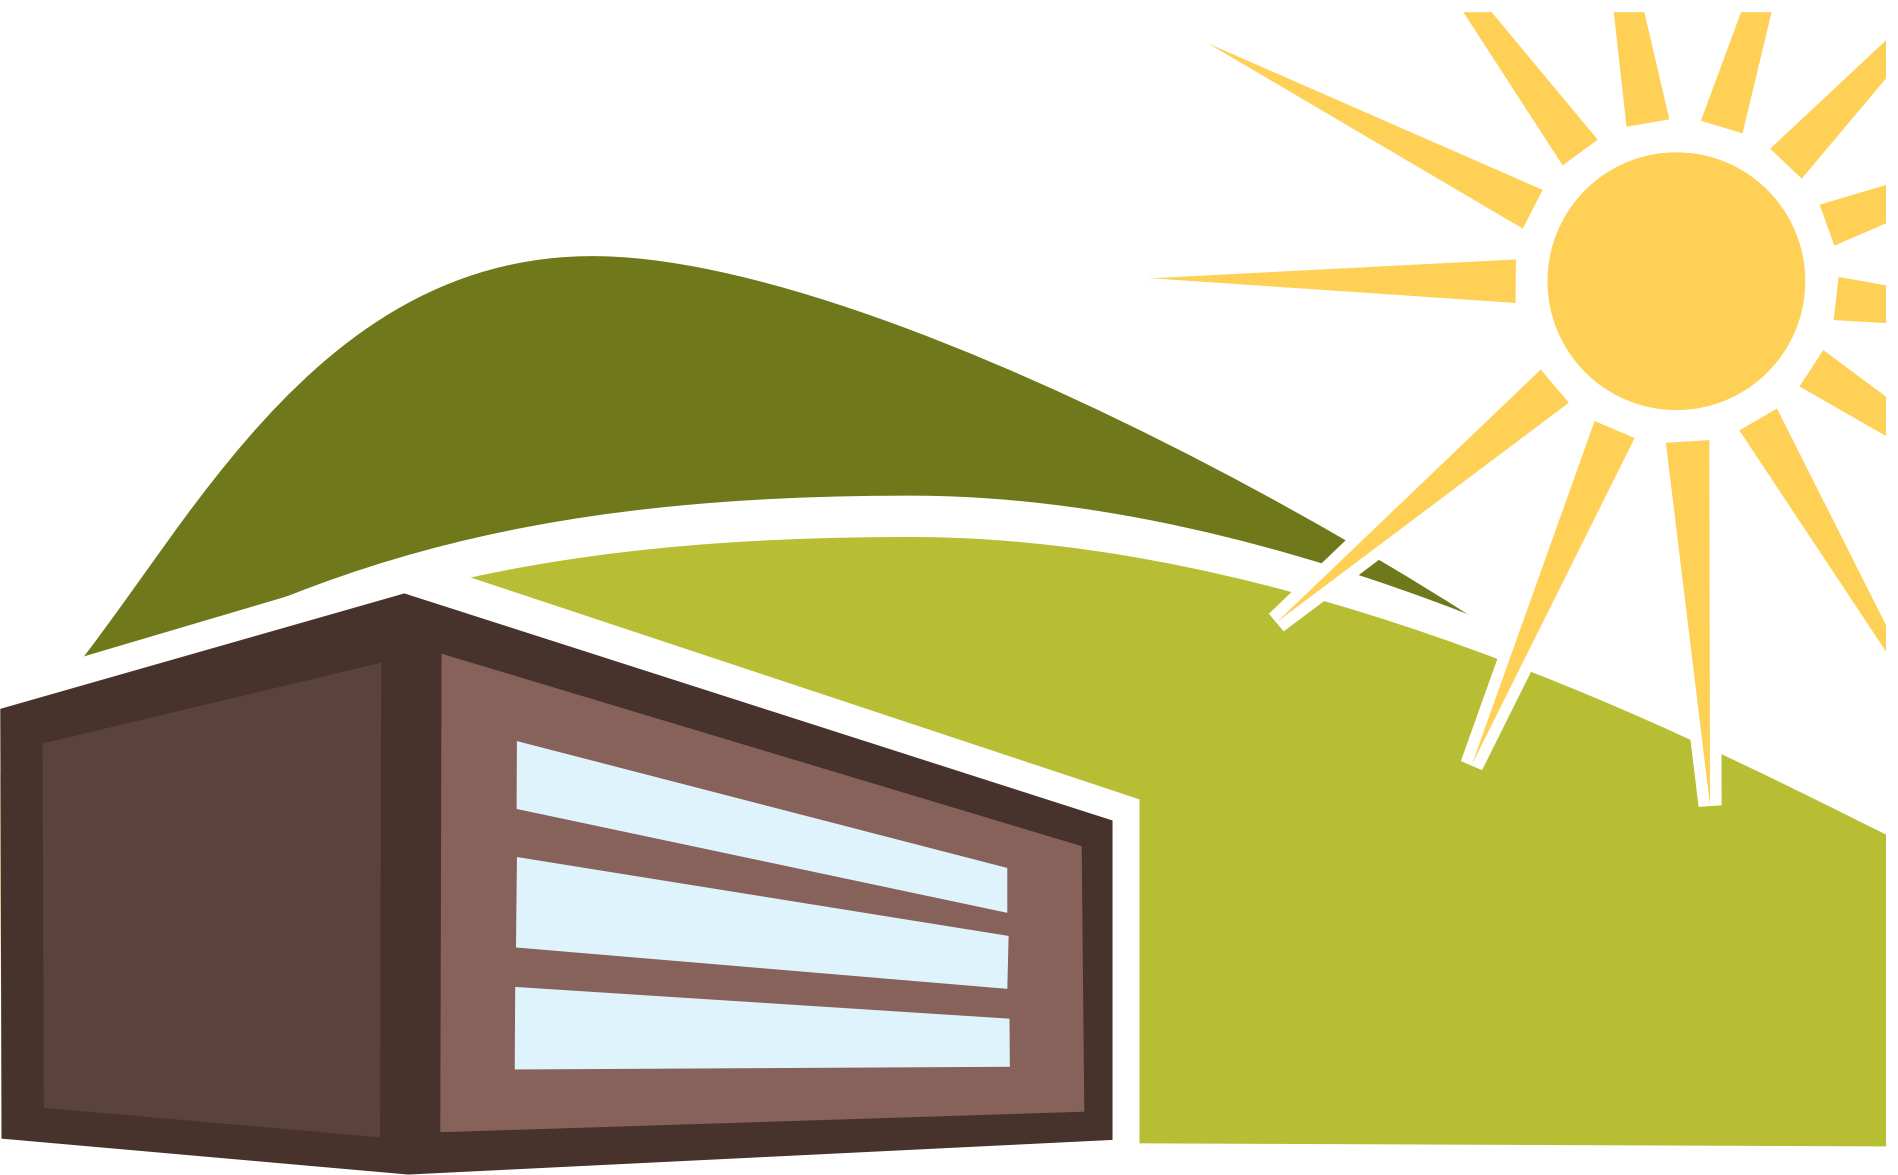 Sunny clipart sign. Summer house big image